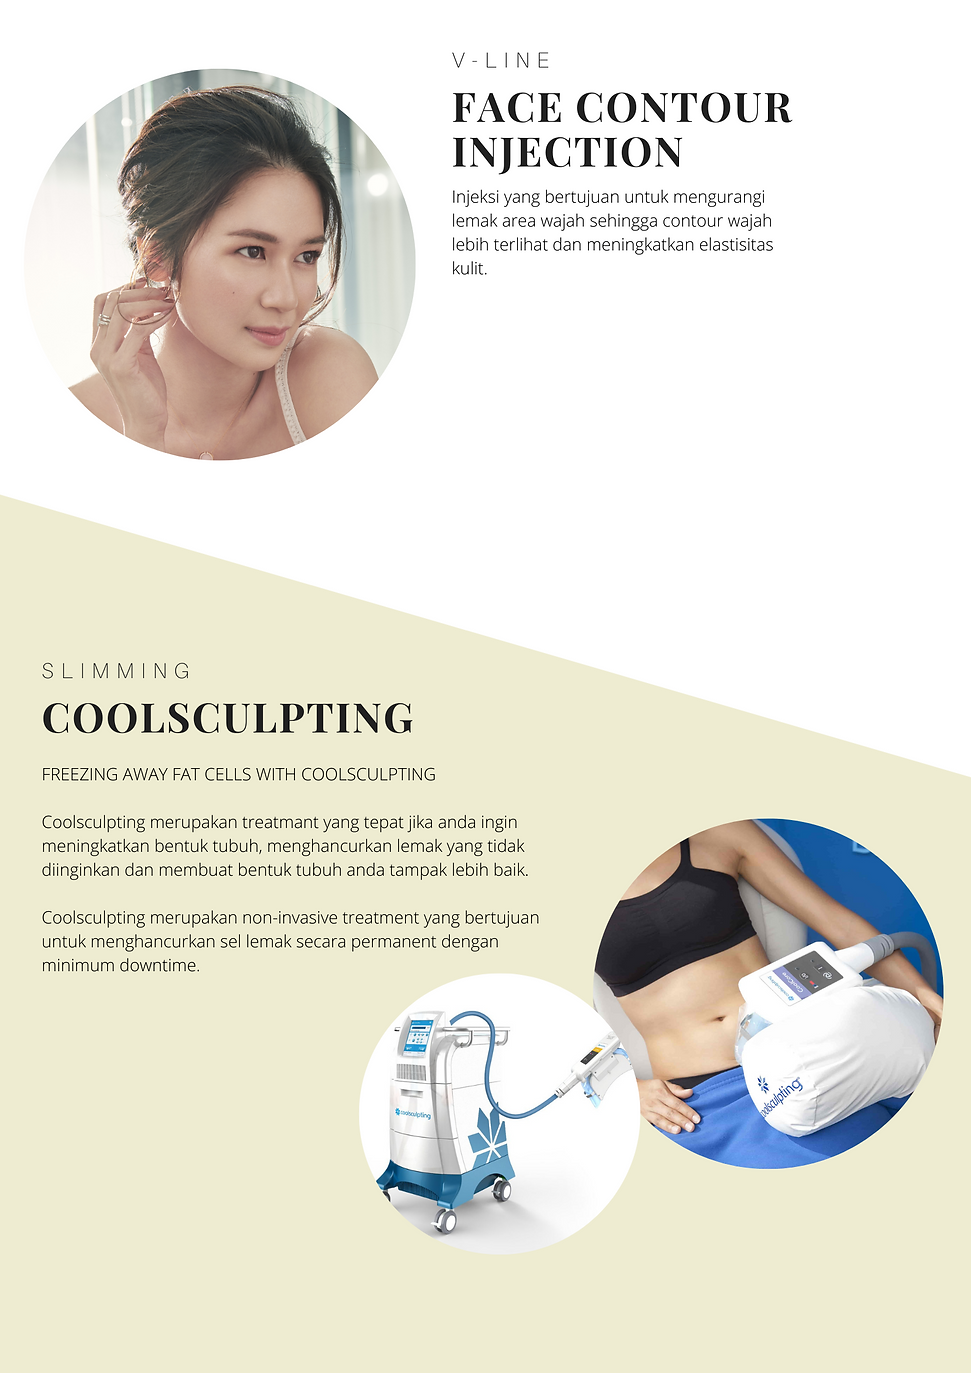 W Aesthetic Clinic Treatment